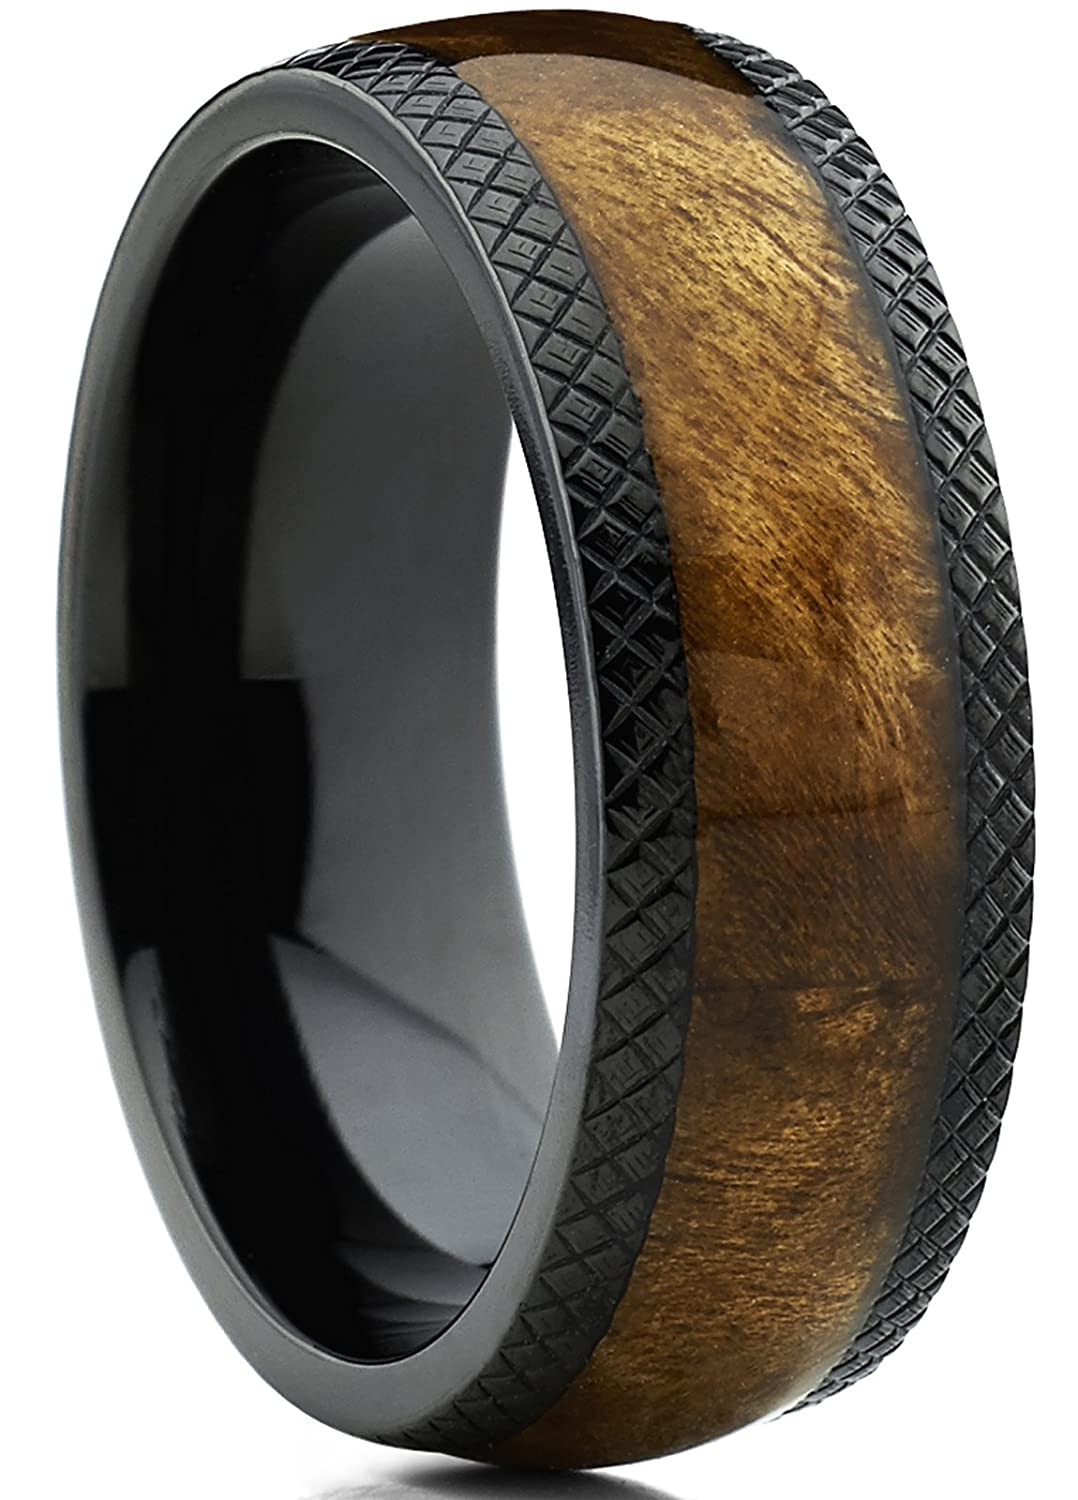 ring comfort with band fit carbon dp black for by sleek inlay fiber cavalier lightweight rings polished finish wedding jewelers titanium men